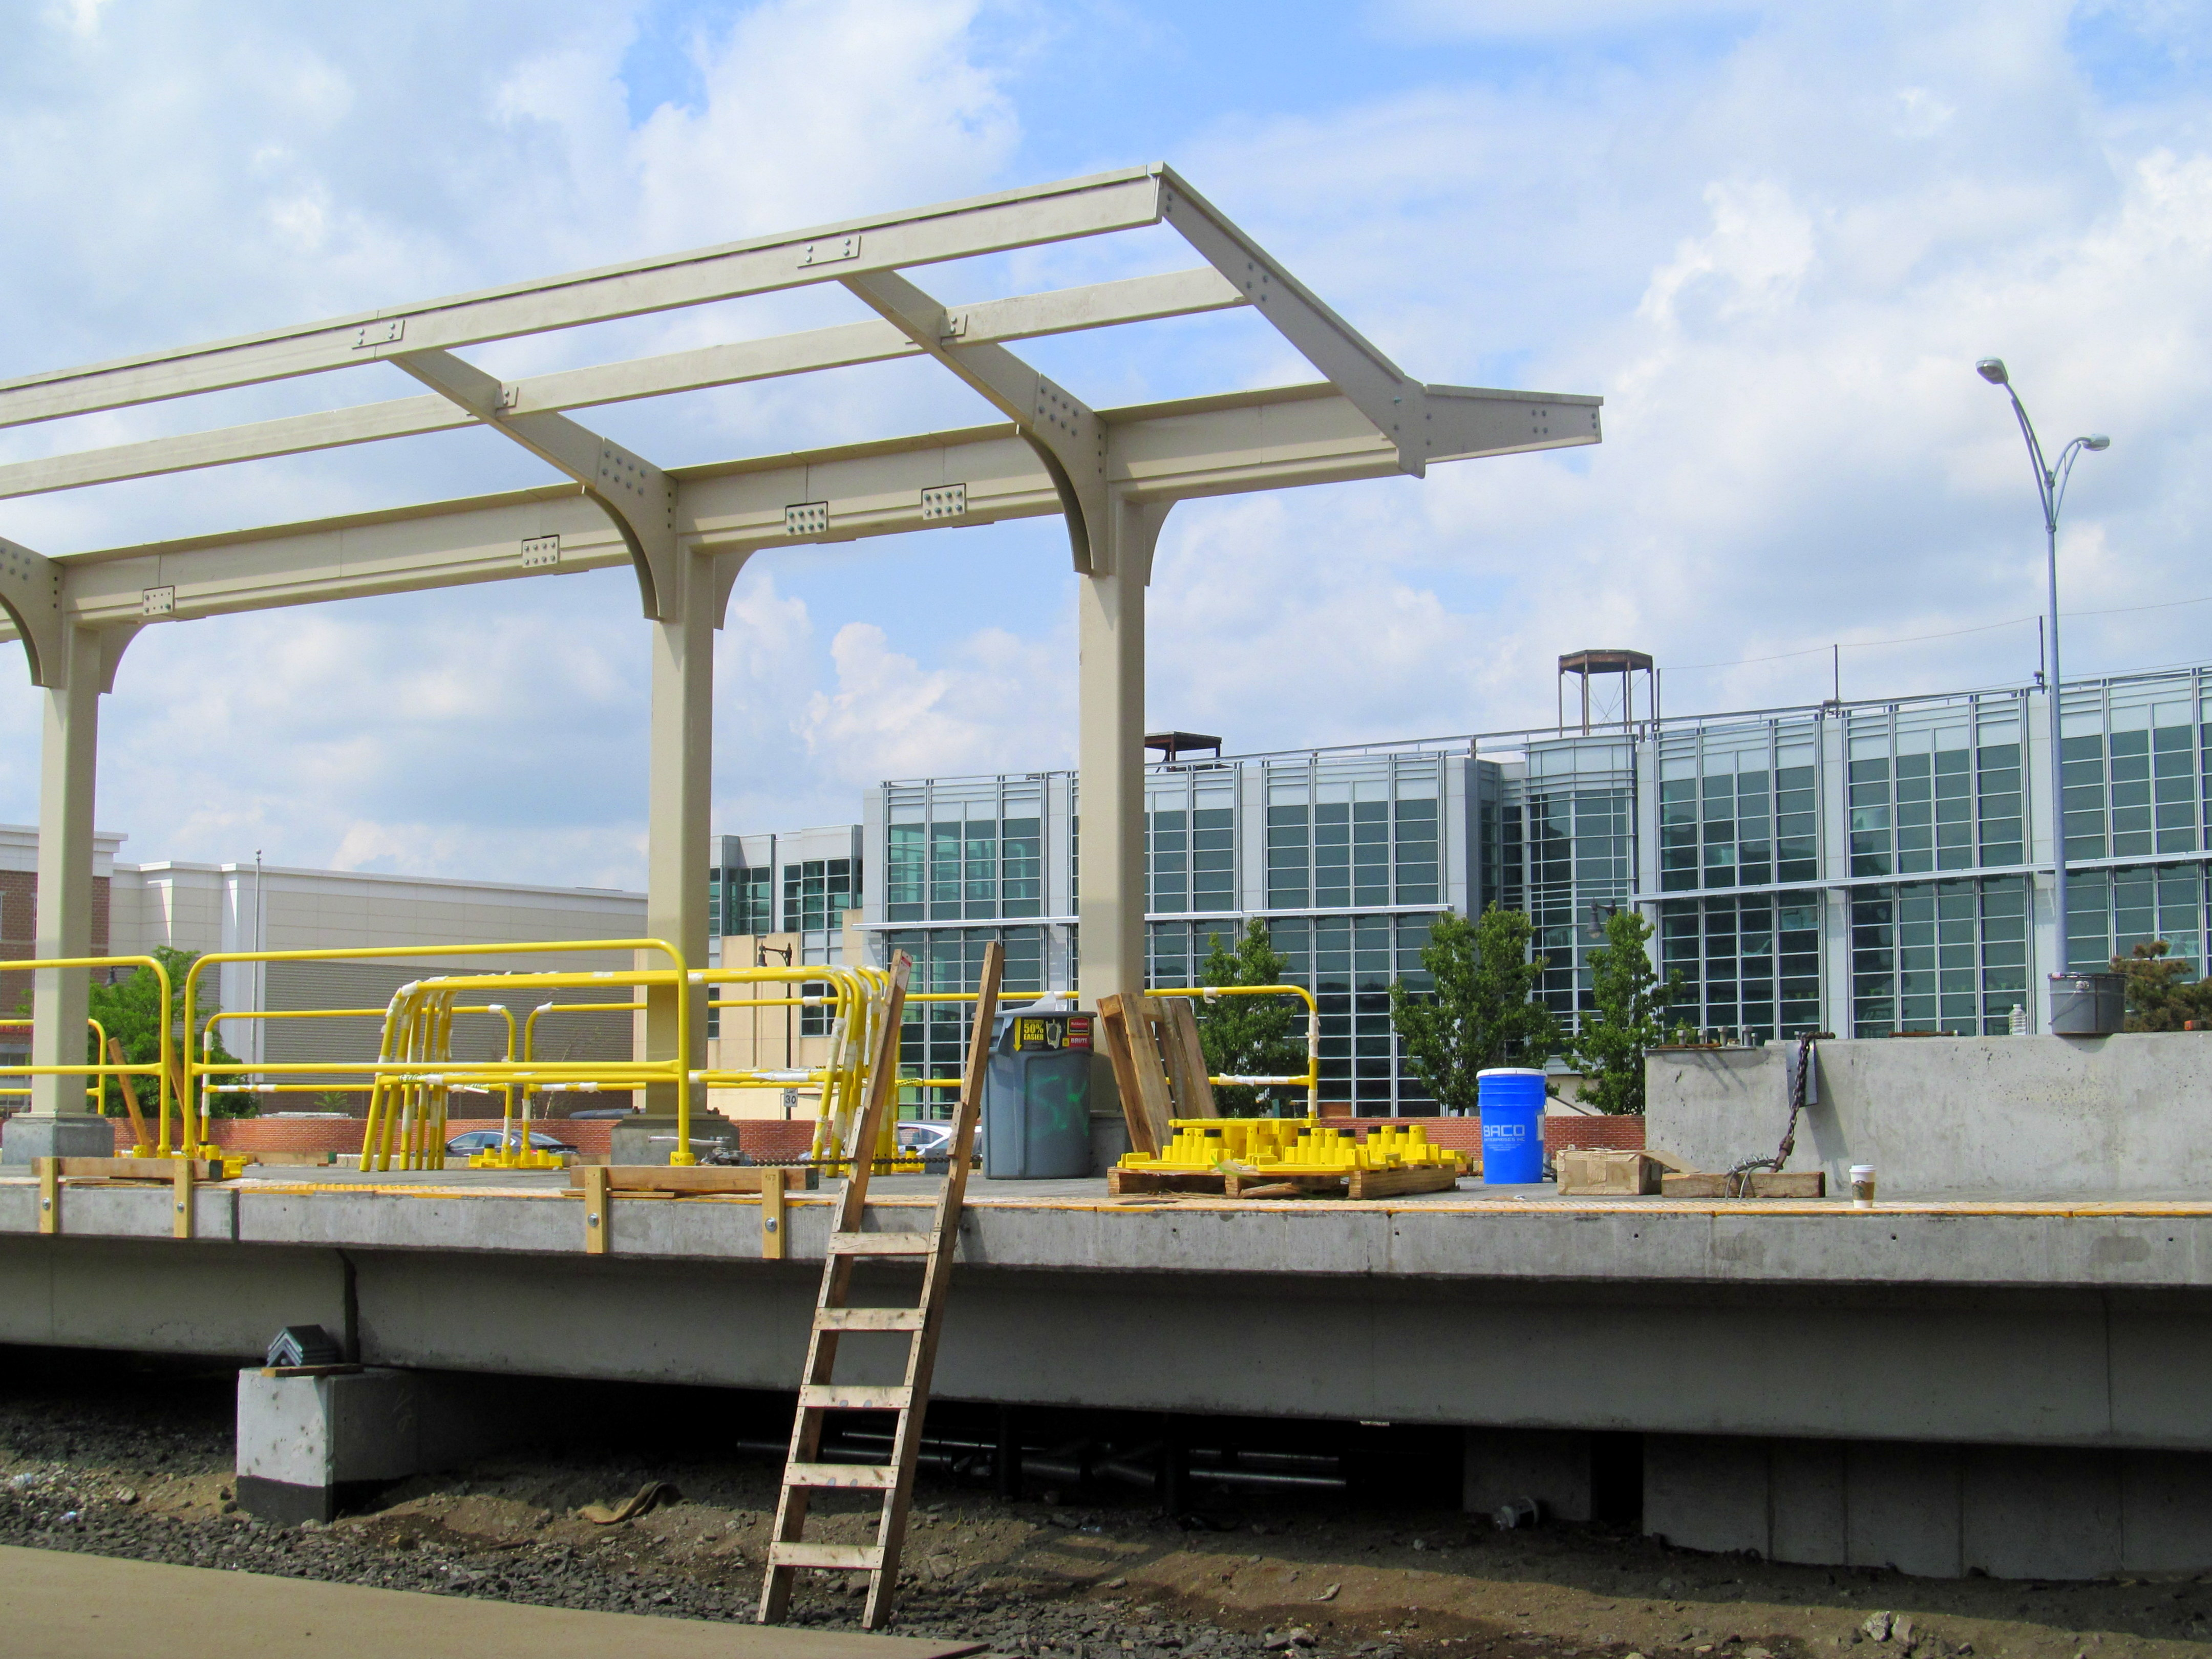 filebutterfly canopy under construction at boston landing station august 2016jpg - Open Canopy 2016